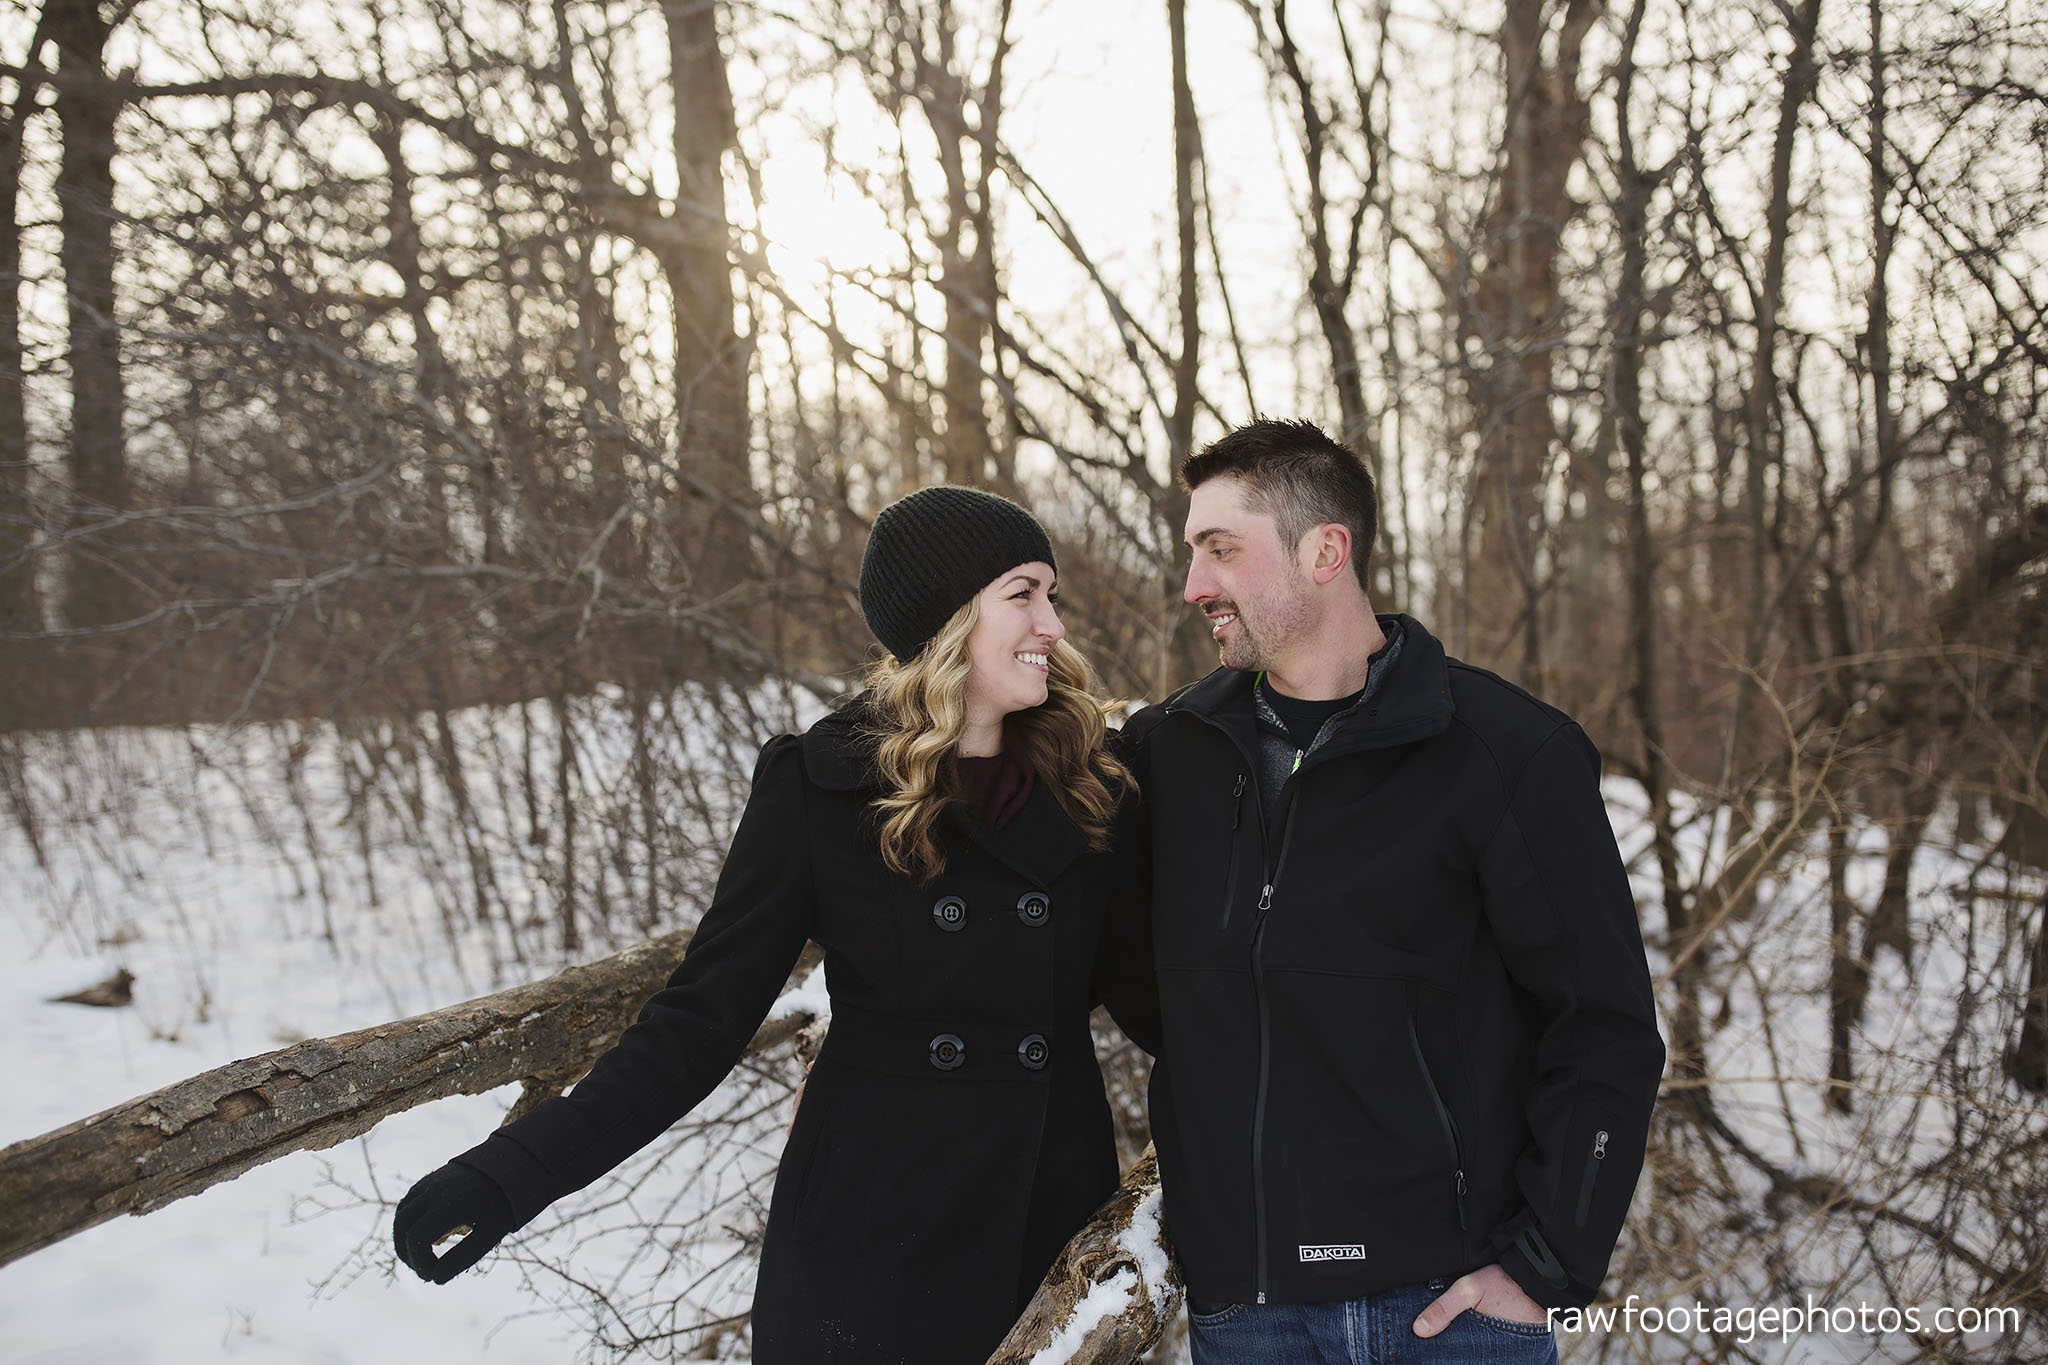 london_ontario_wedding_photographer-engagement_session-winter_engagement_photos-raw_footage_photography005.jpg